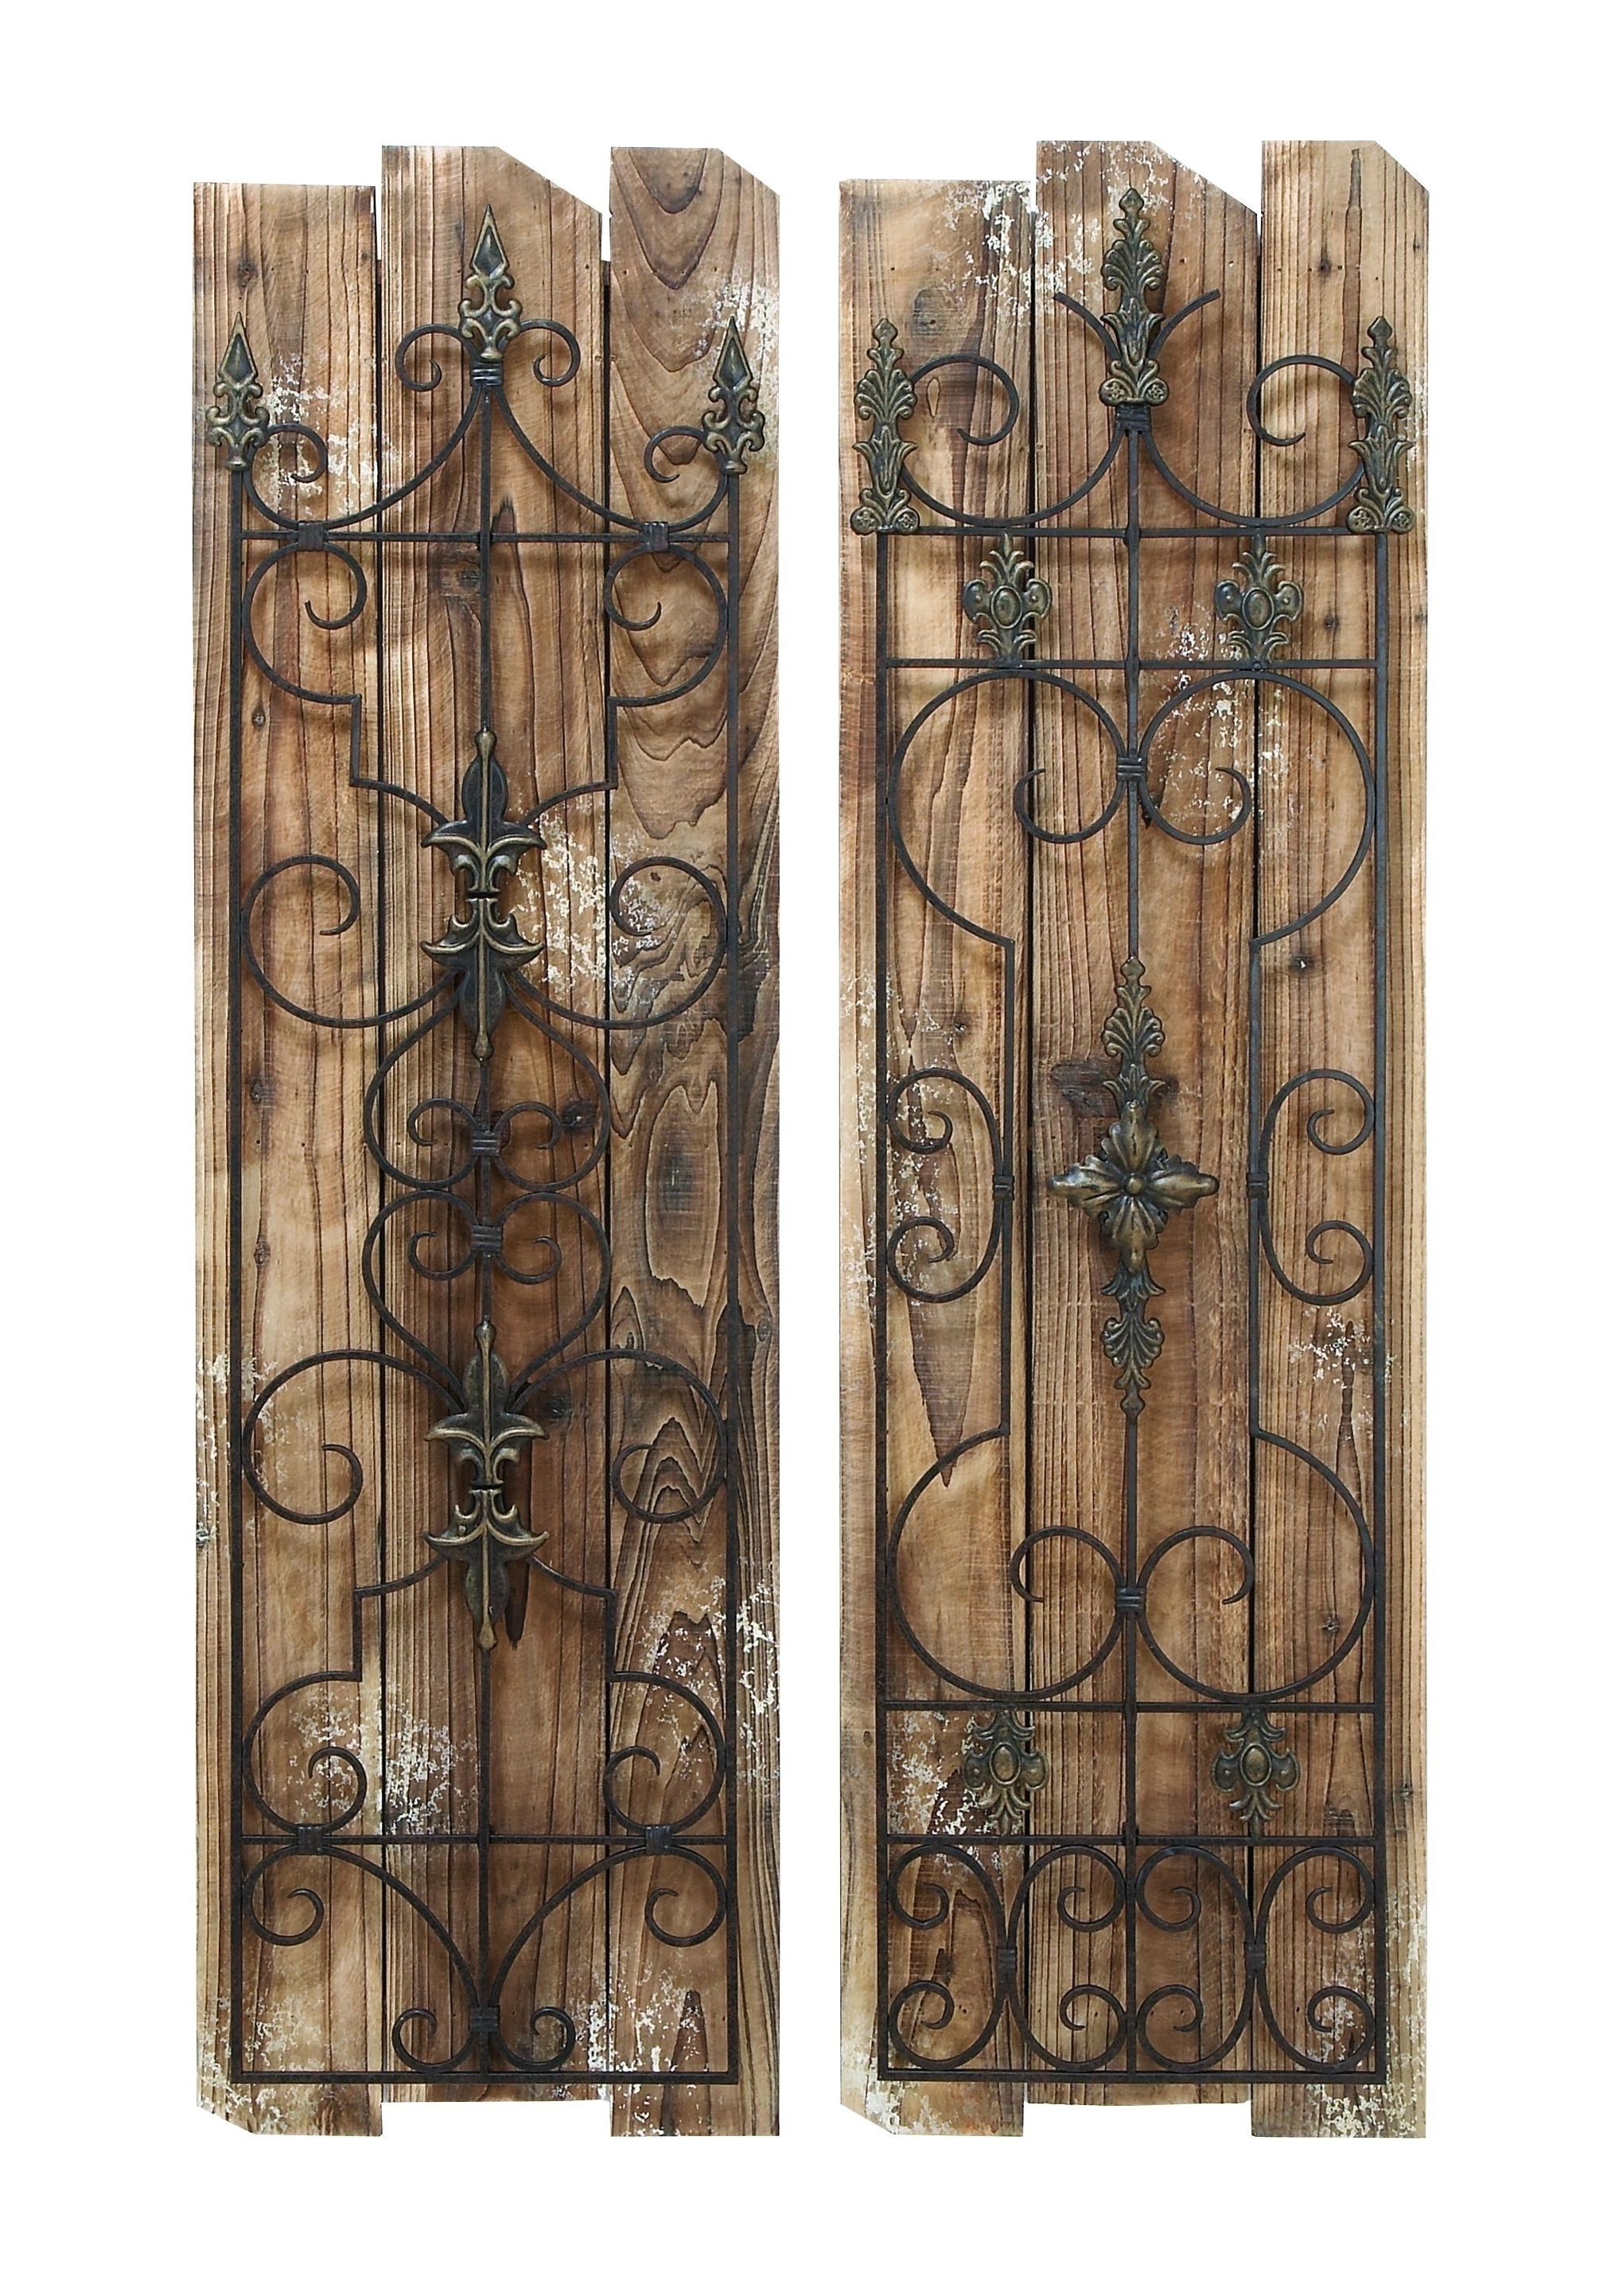 Most Current Metal Wood Wall Decor Image On Decorative Metal Wall Panels – Prix With Regard To Wood And Metal Wall Art (View 4 of 15)